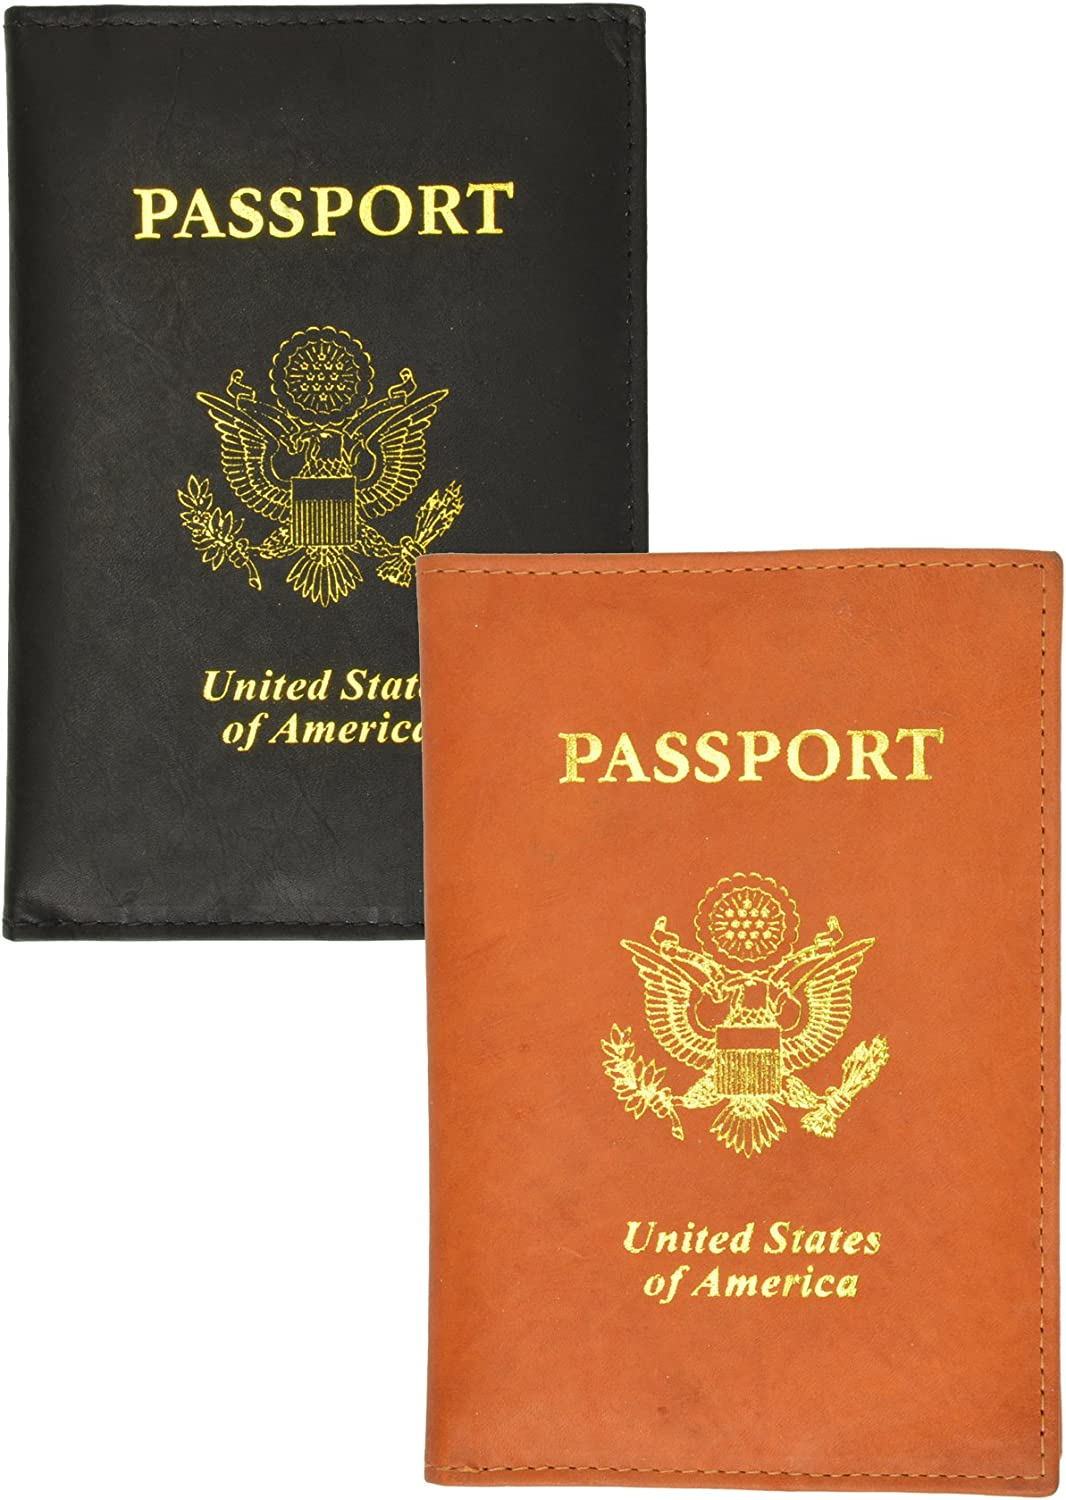 2 Passport Cover Holders Genuine Leather Fashionable ID Free shipping New Wallet T Case Travel